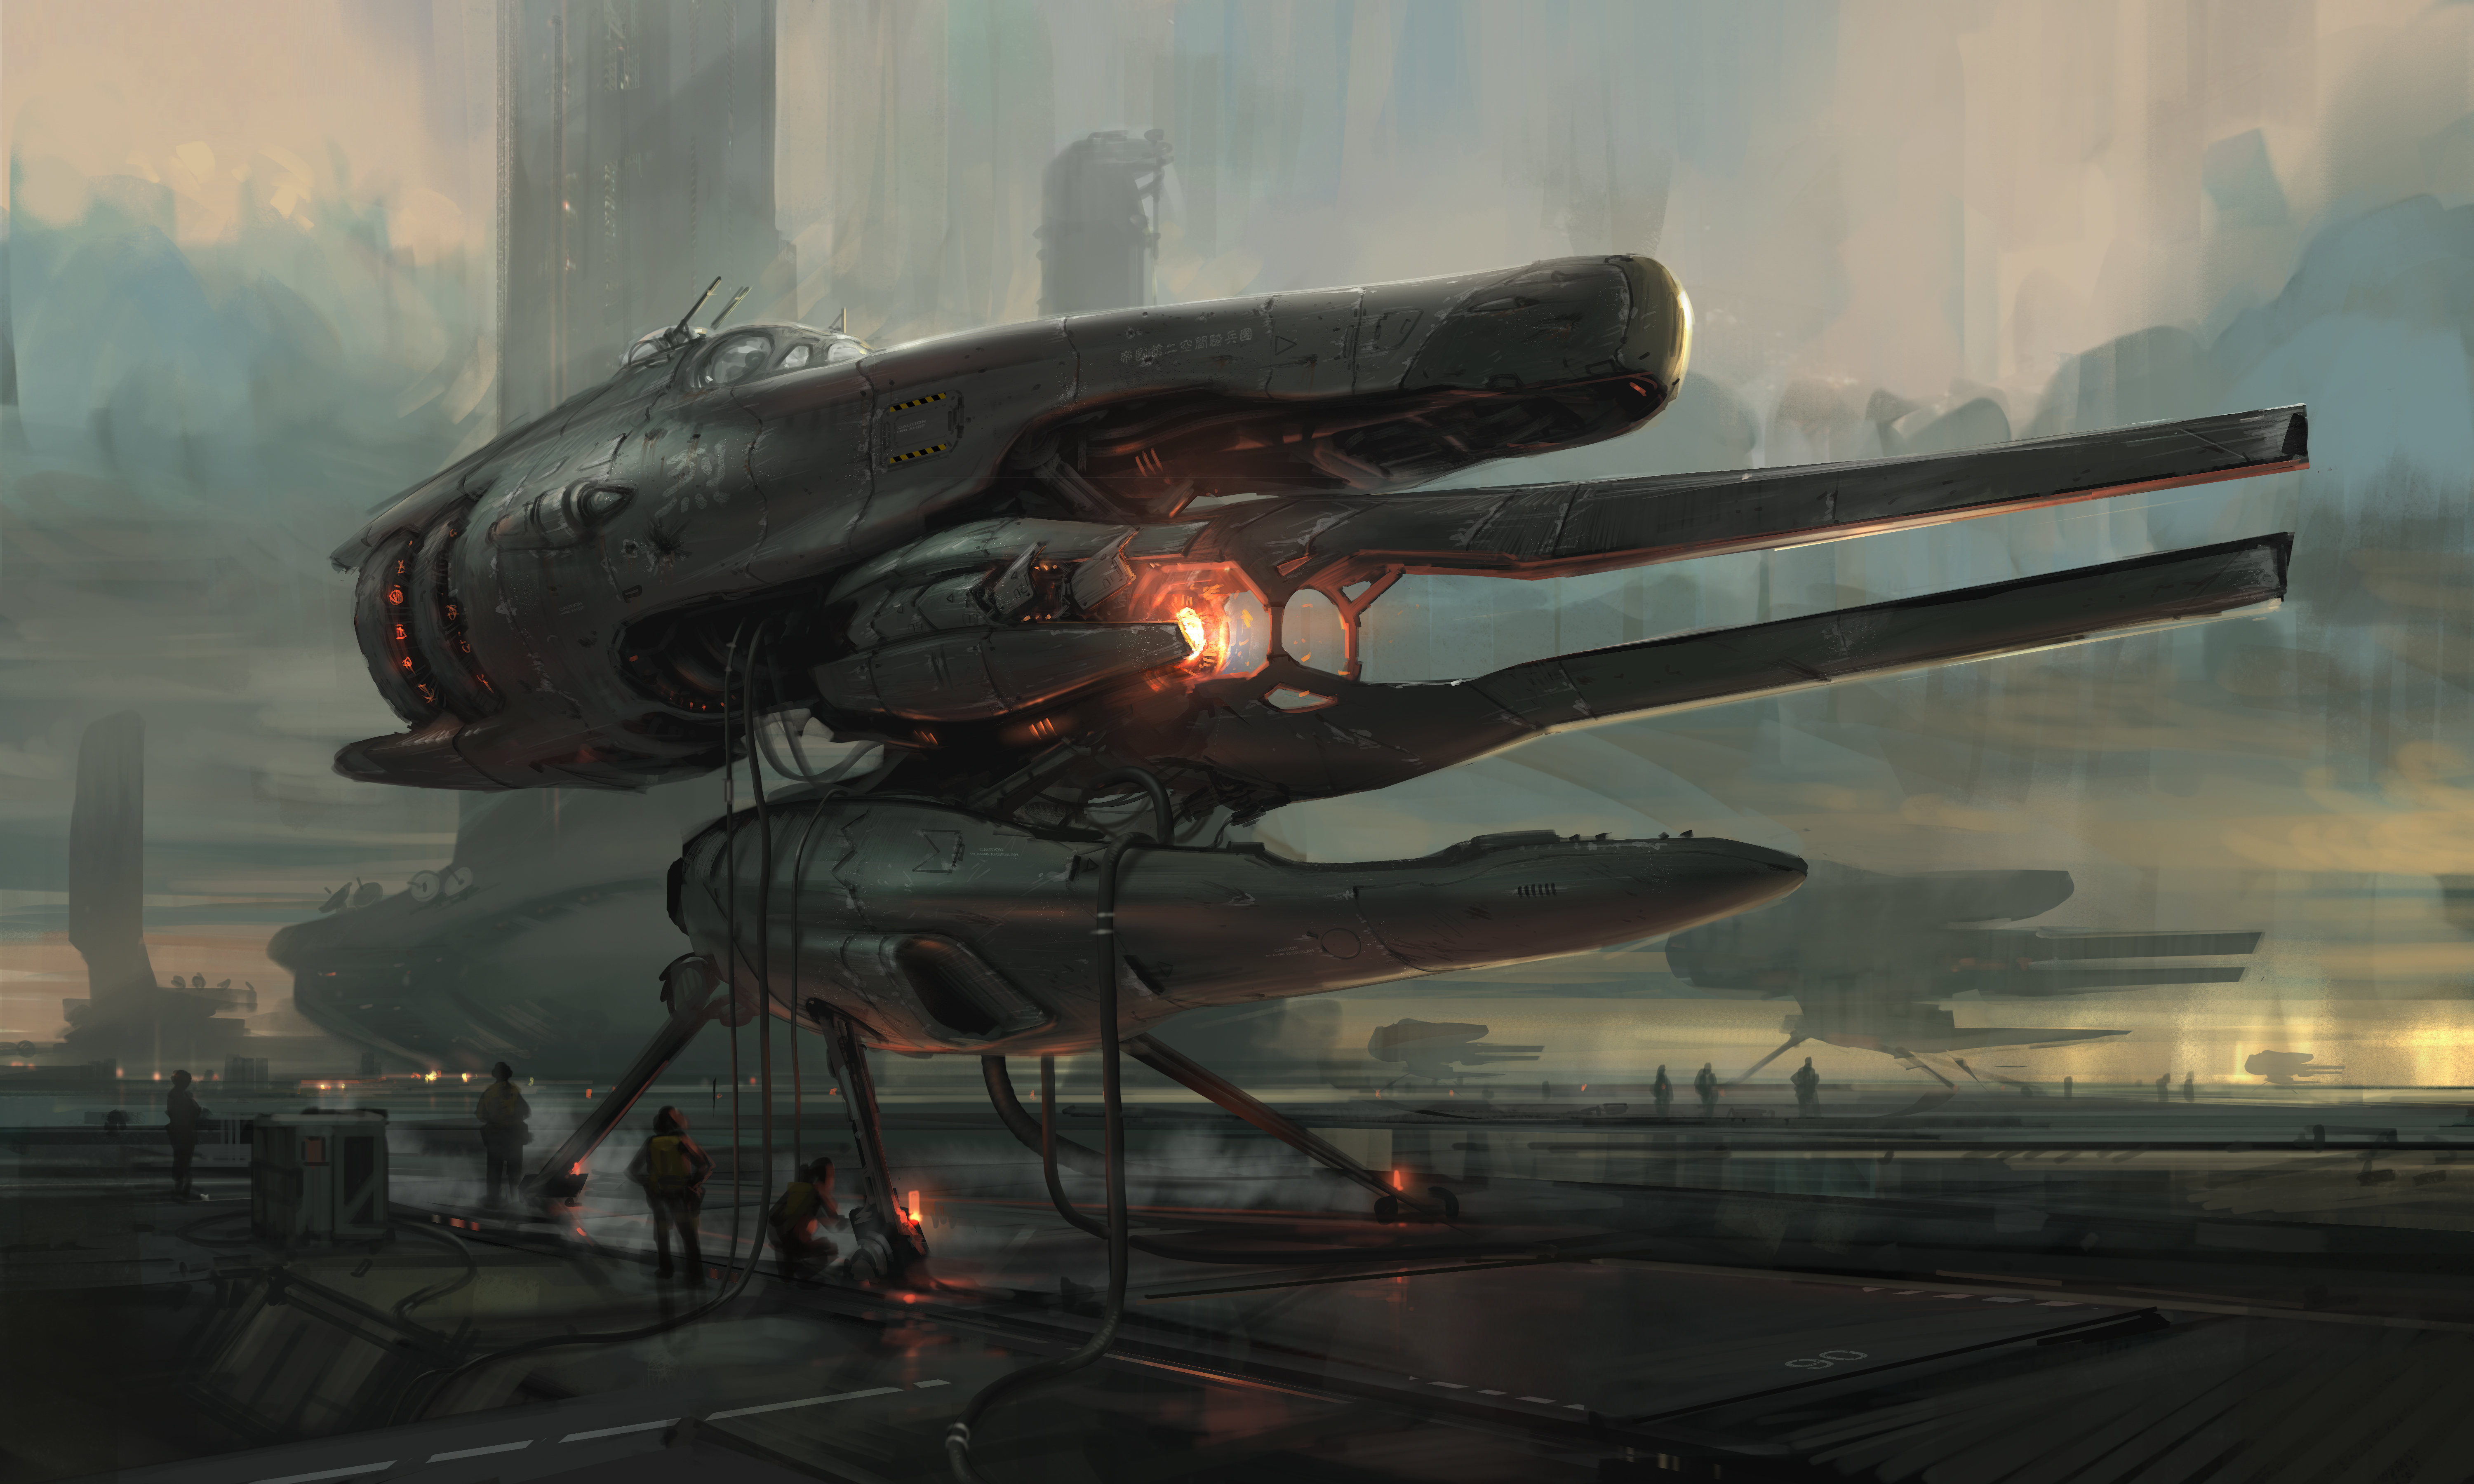 space fighter jets - HD1800×1079